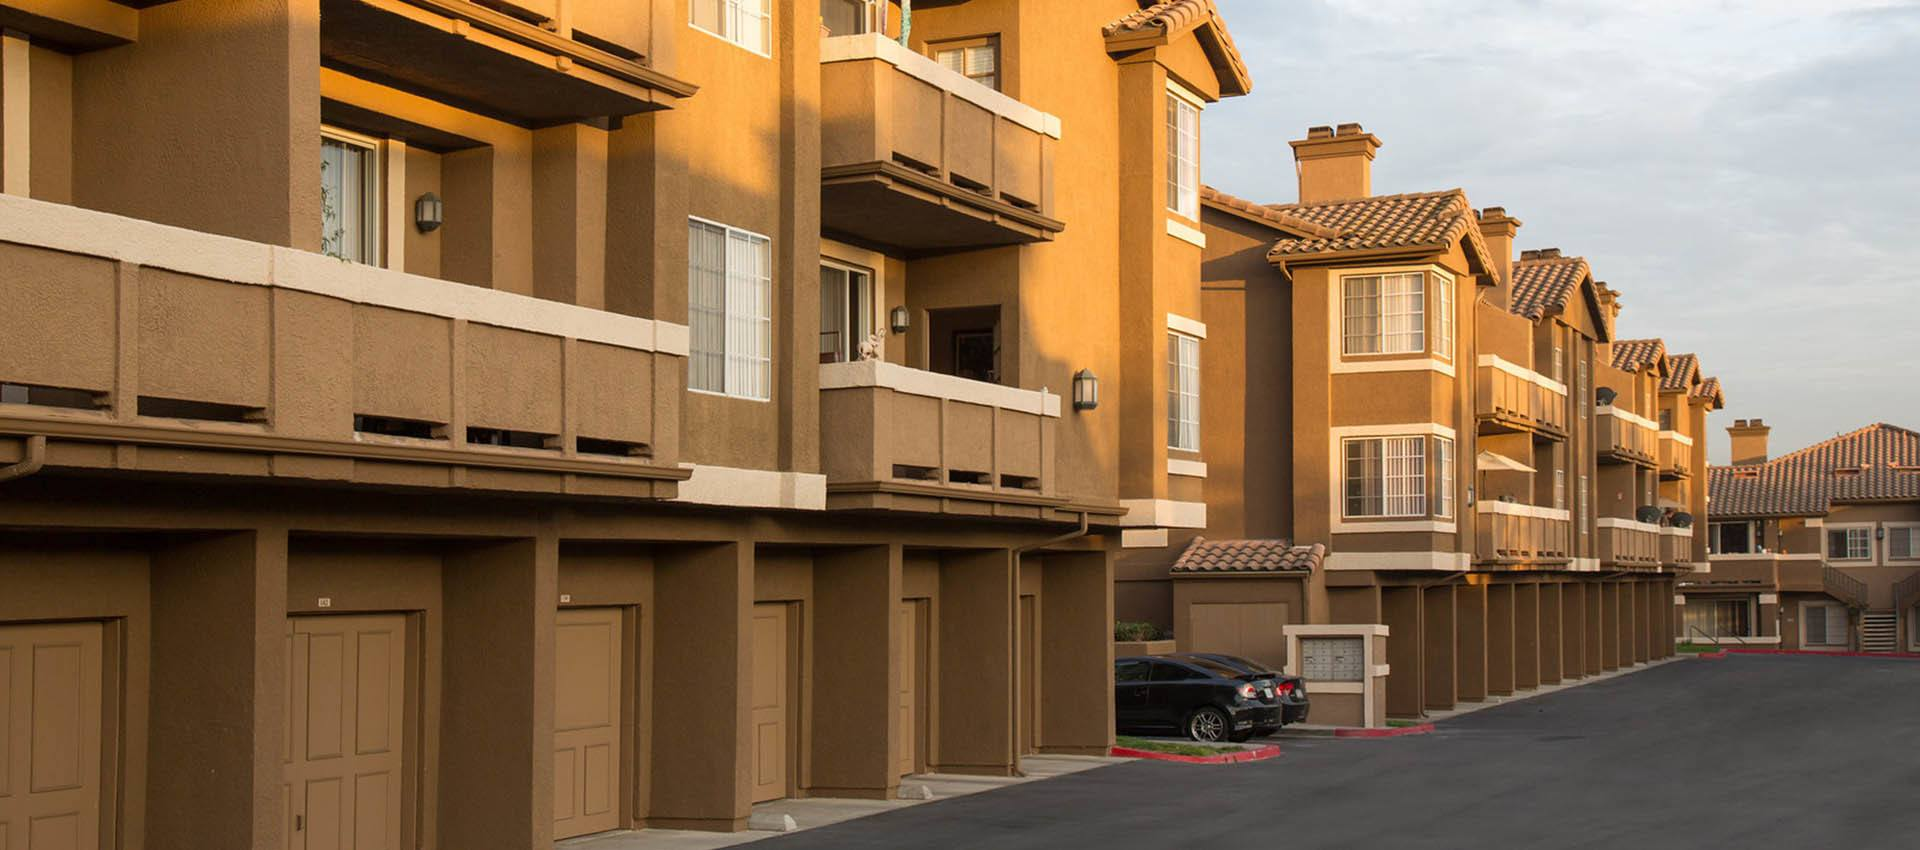 Condominiums Featuring Garages at Paloma Summit Condominium Rentals in Foothill Ranch, California